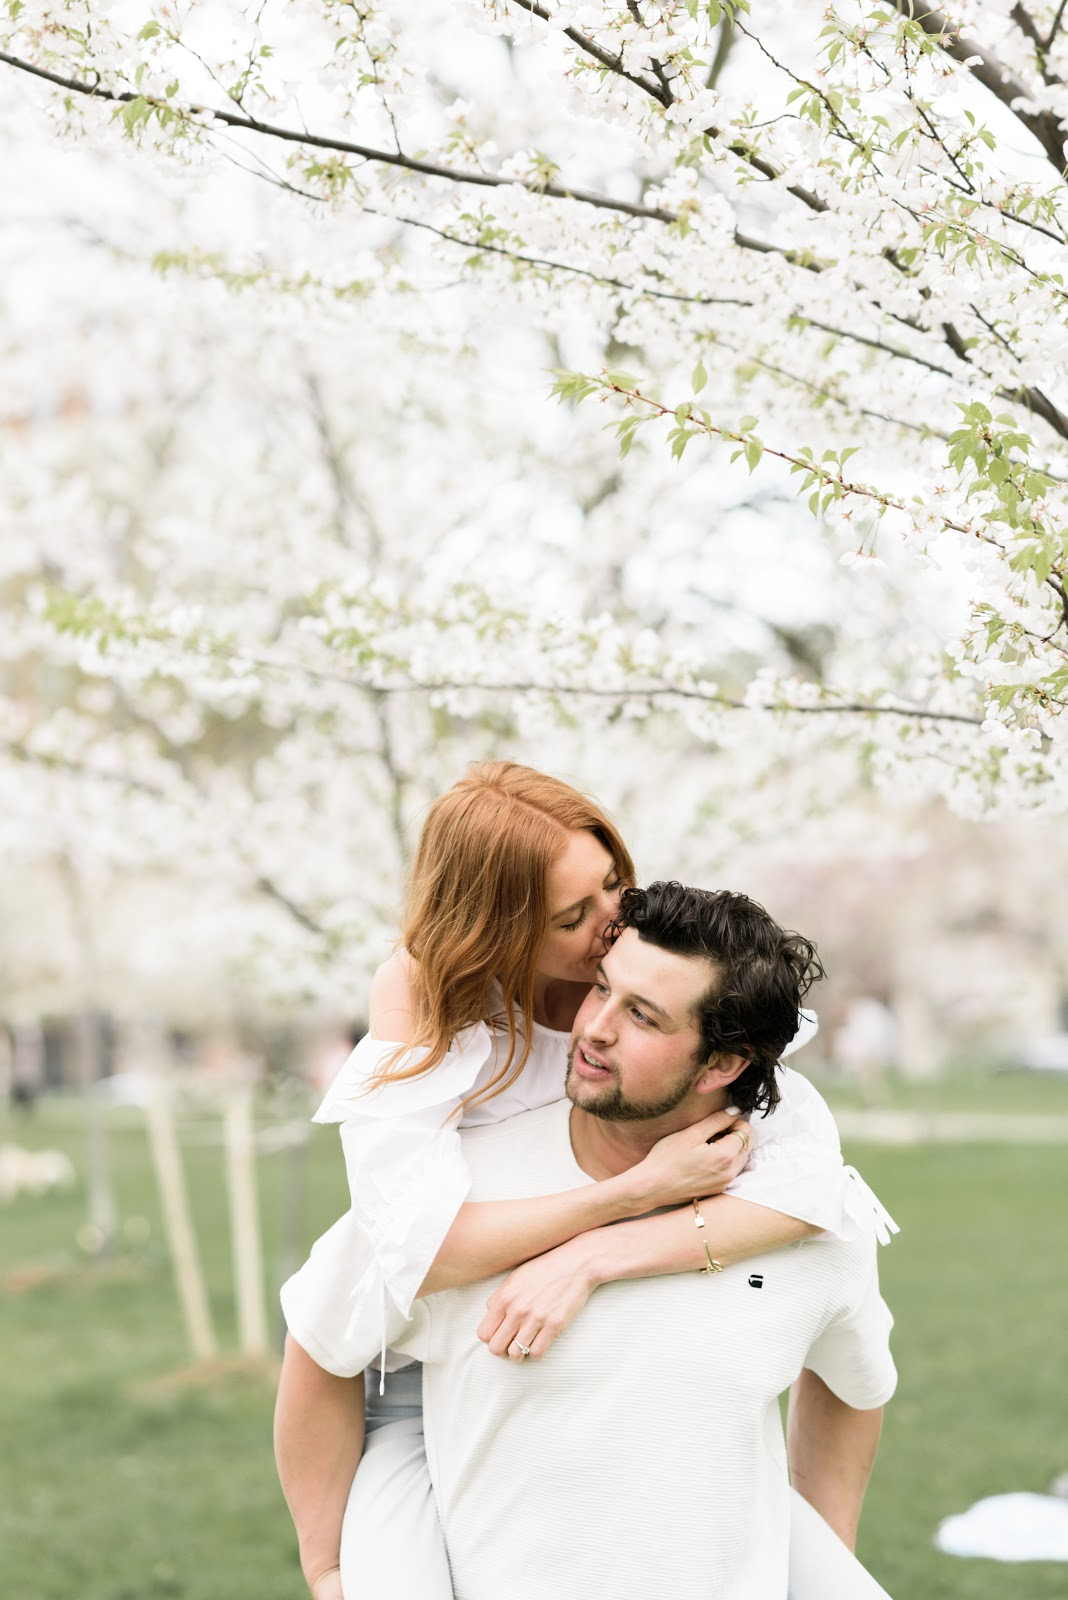 How to make the most out of your engagement; engagement shoot tips, engagement planning